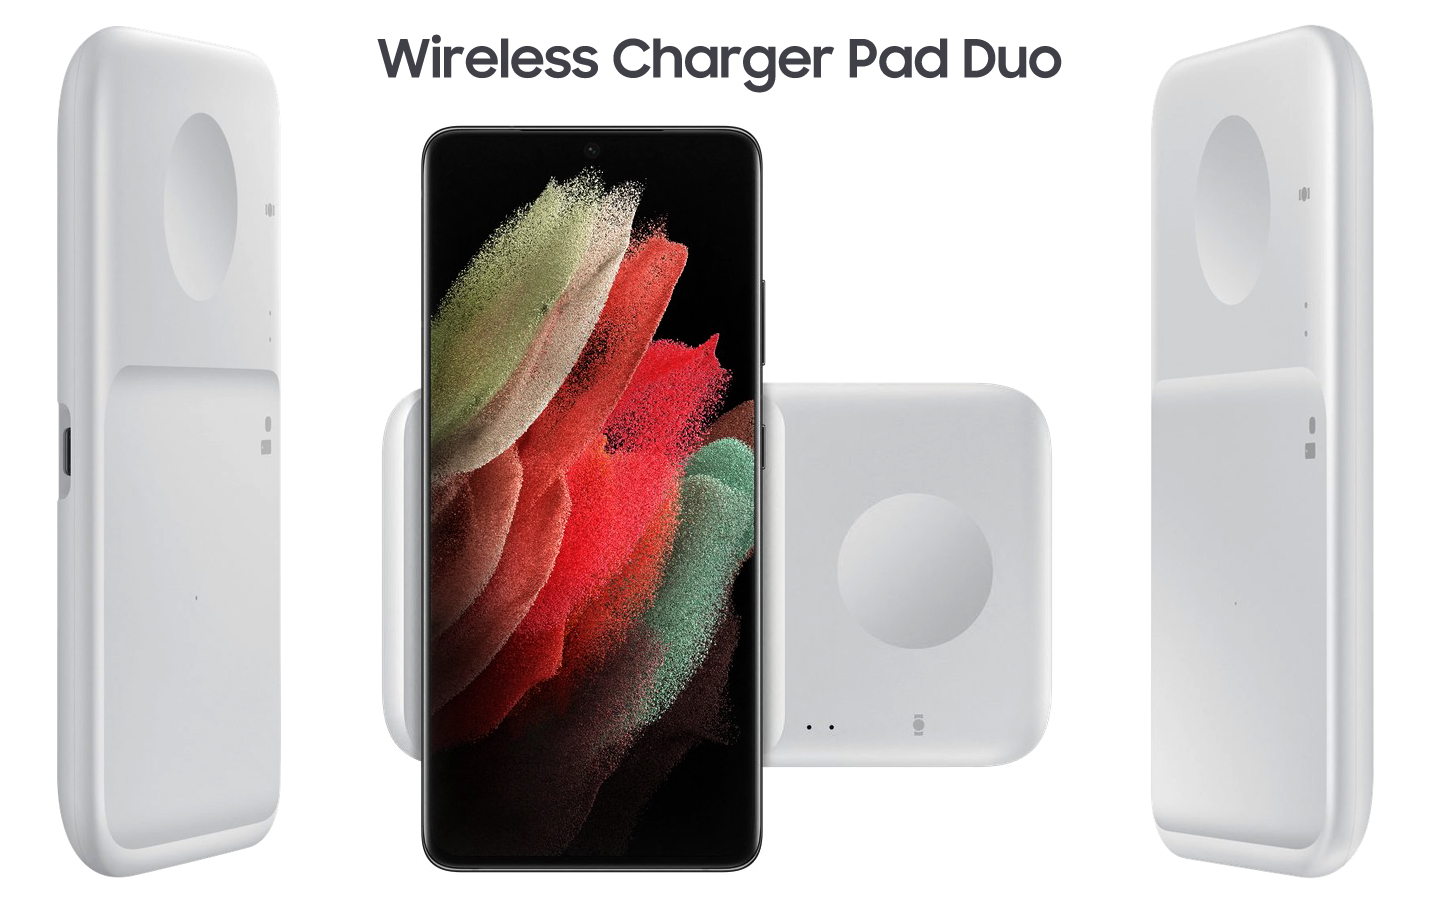 Samsung Wireless Charger Pad Duo